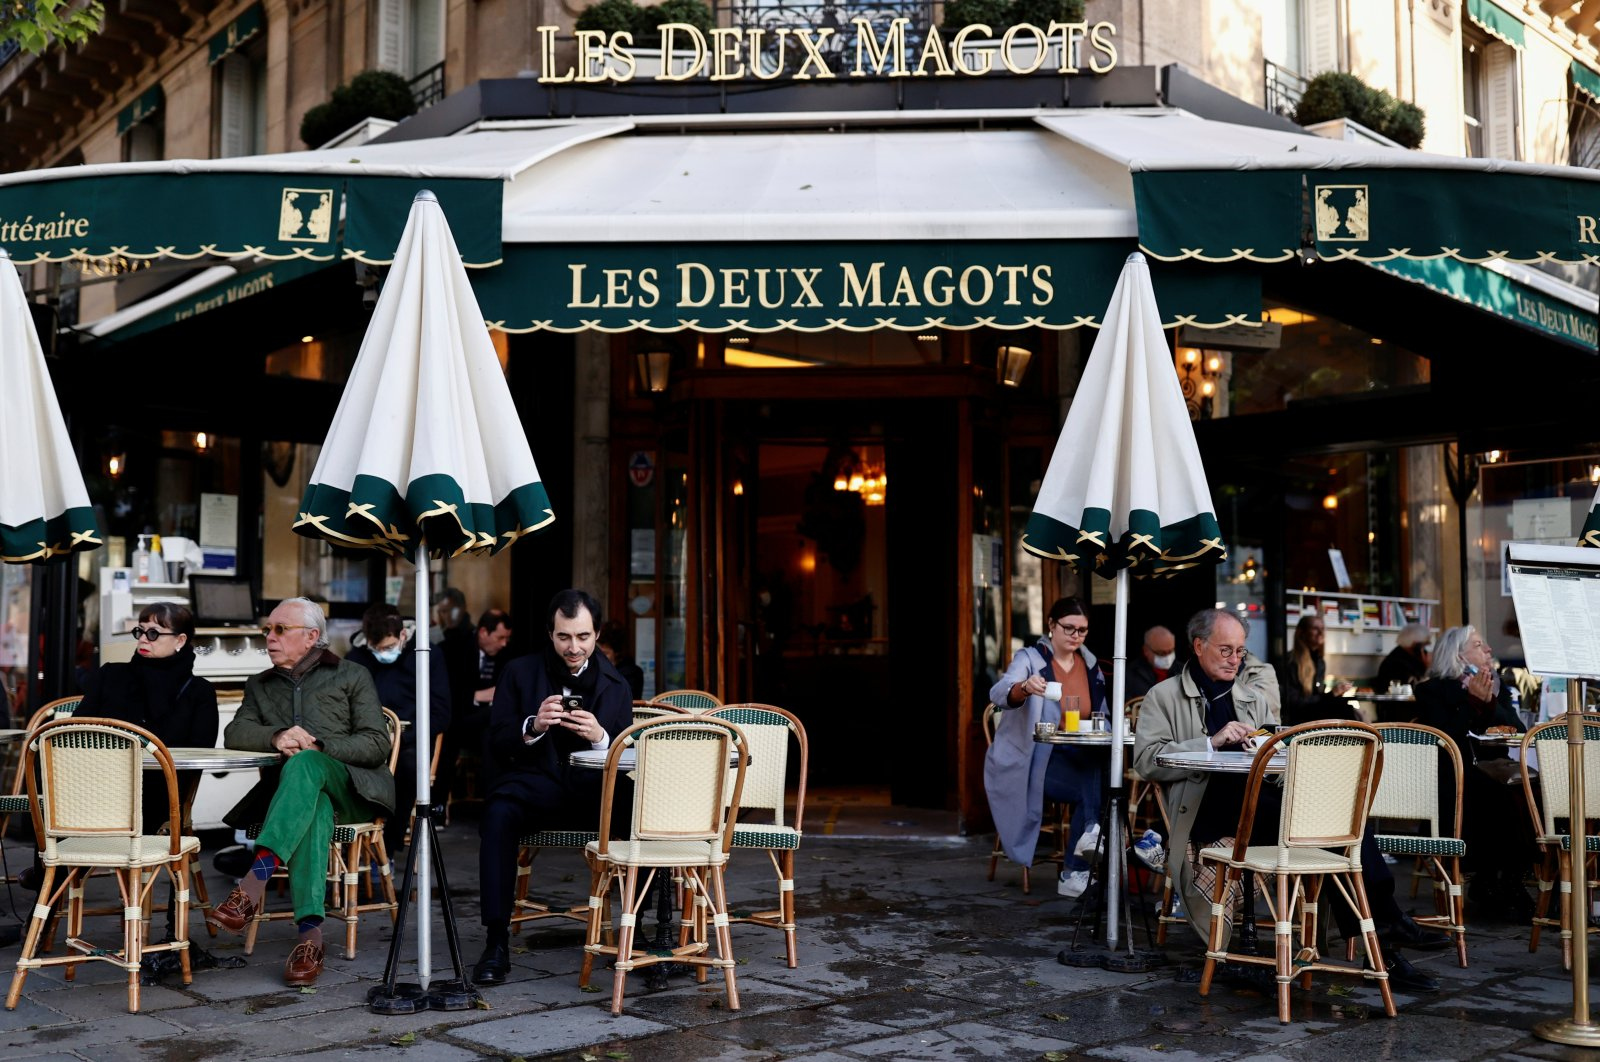 Customers sit on the terrace of the cafe and restaurant Les Deux Magots in Paris as cafes, bars and restaurants reopen after closing down for months amid the COVID-19 outbreak, Paris, France, May 19, 2021. (Reuters Photo)